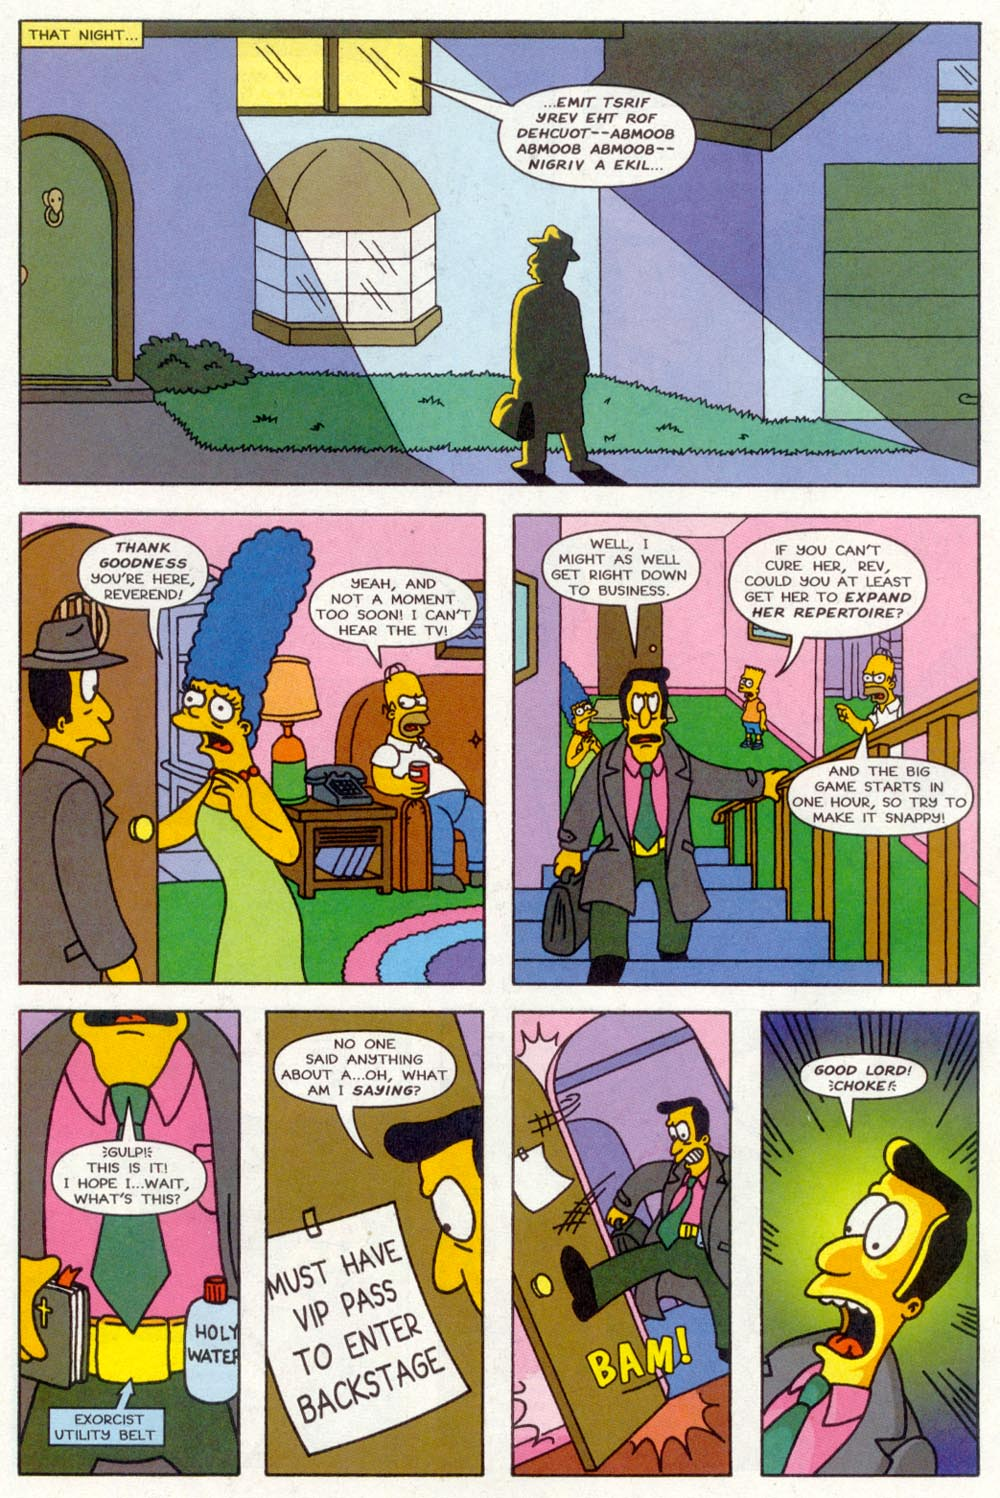 Read online Treehouse of Horror comic -  Issue #2 - 27